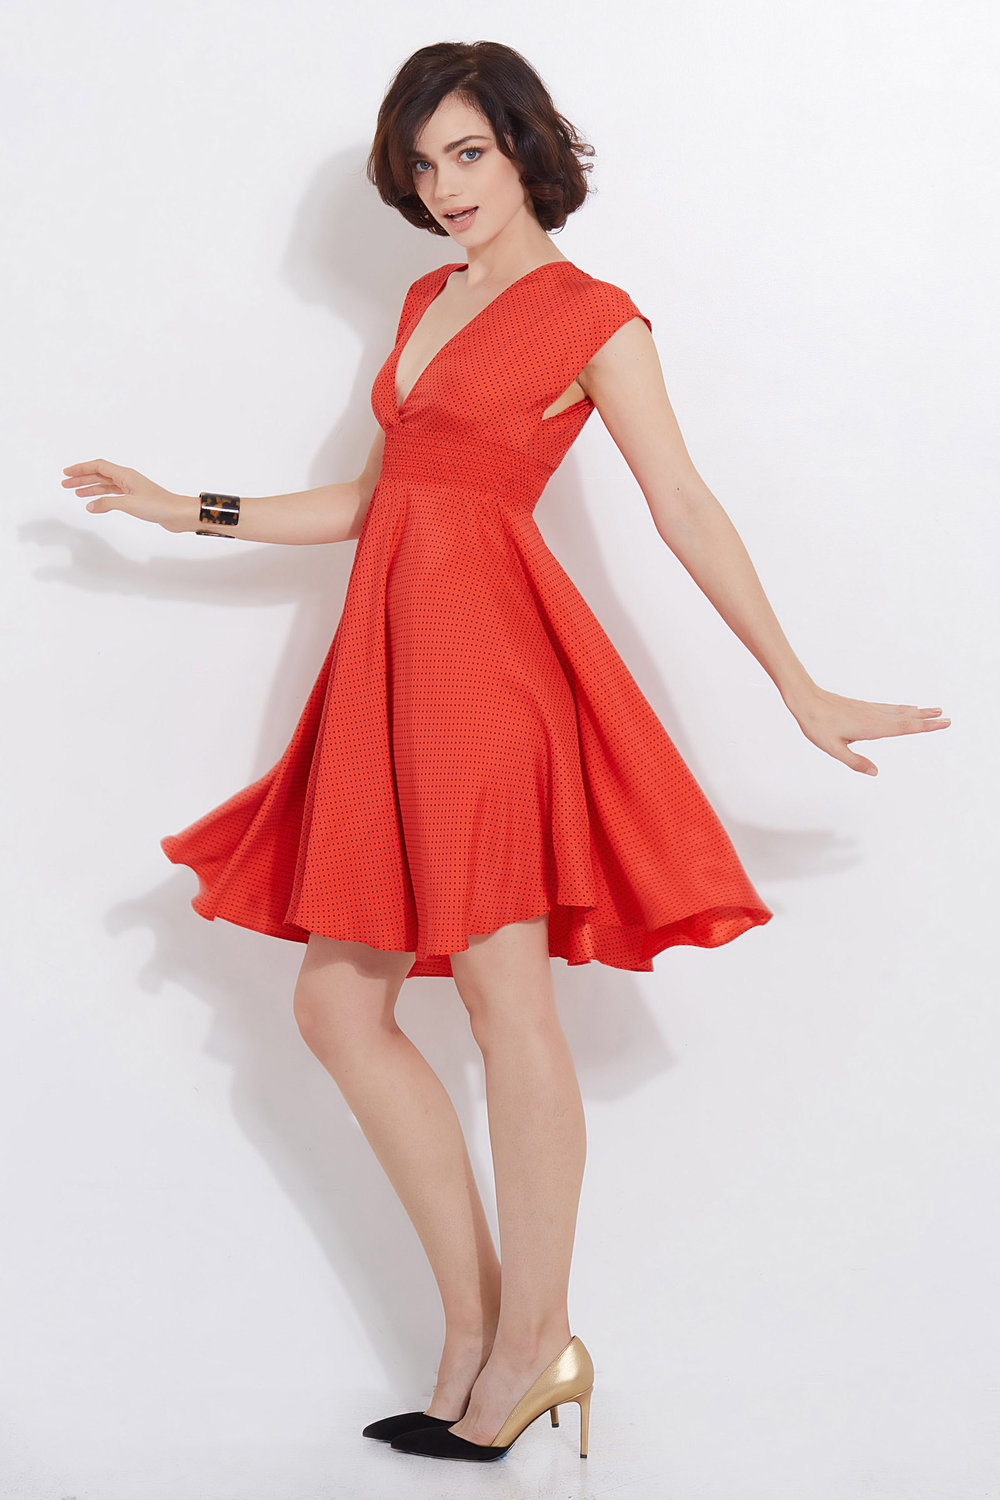 Raquelle Party Dress Red Black Dot Darling 5.jpg